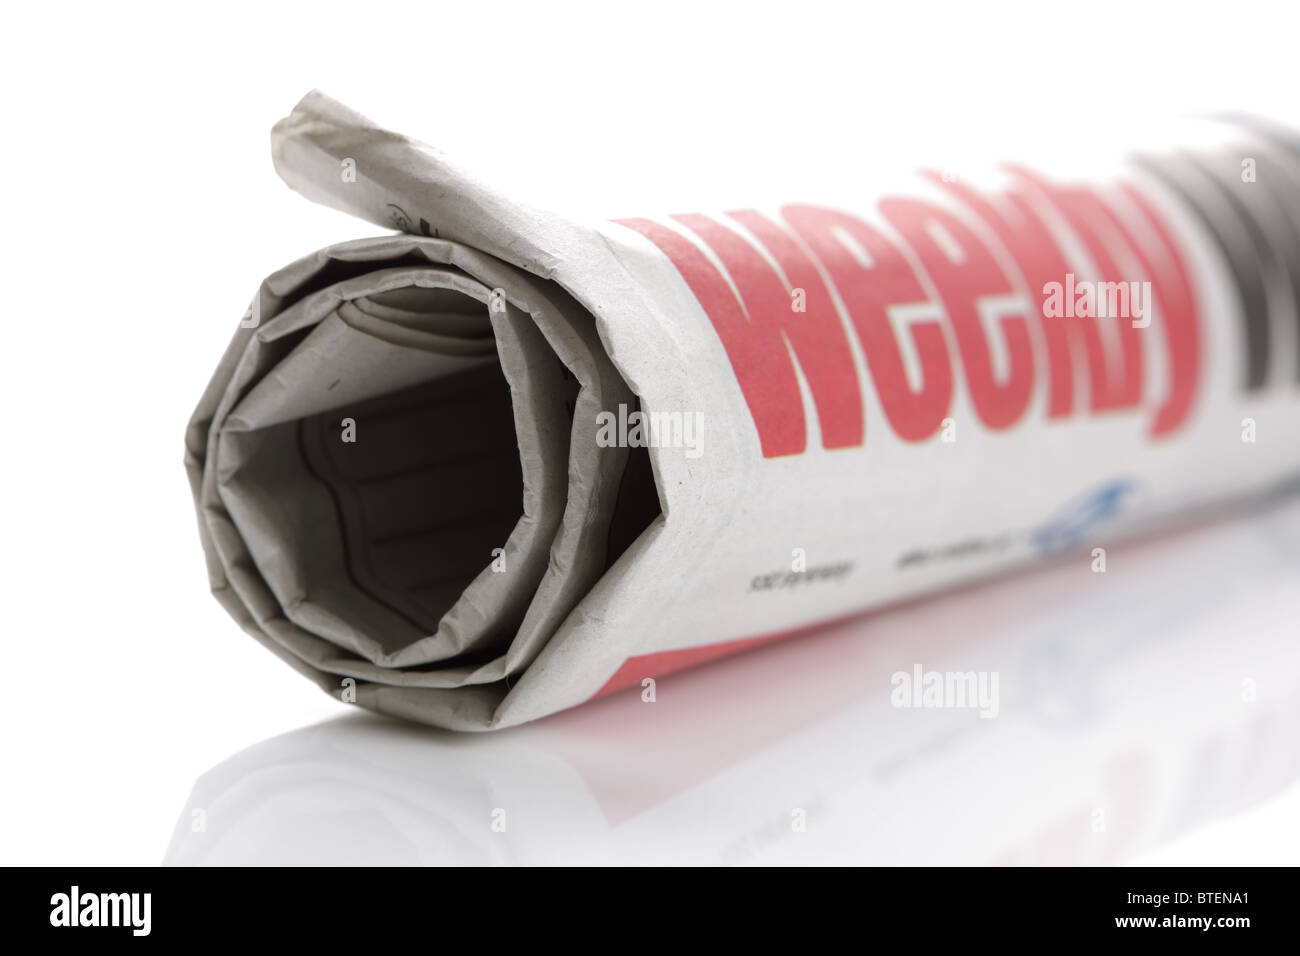 Weekly newspaper - Stock Image